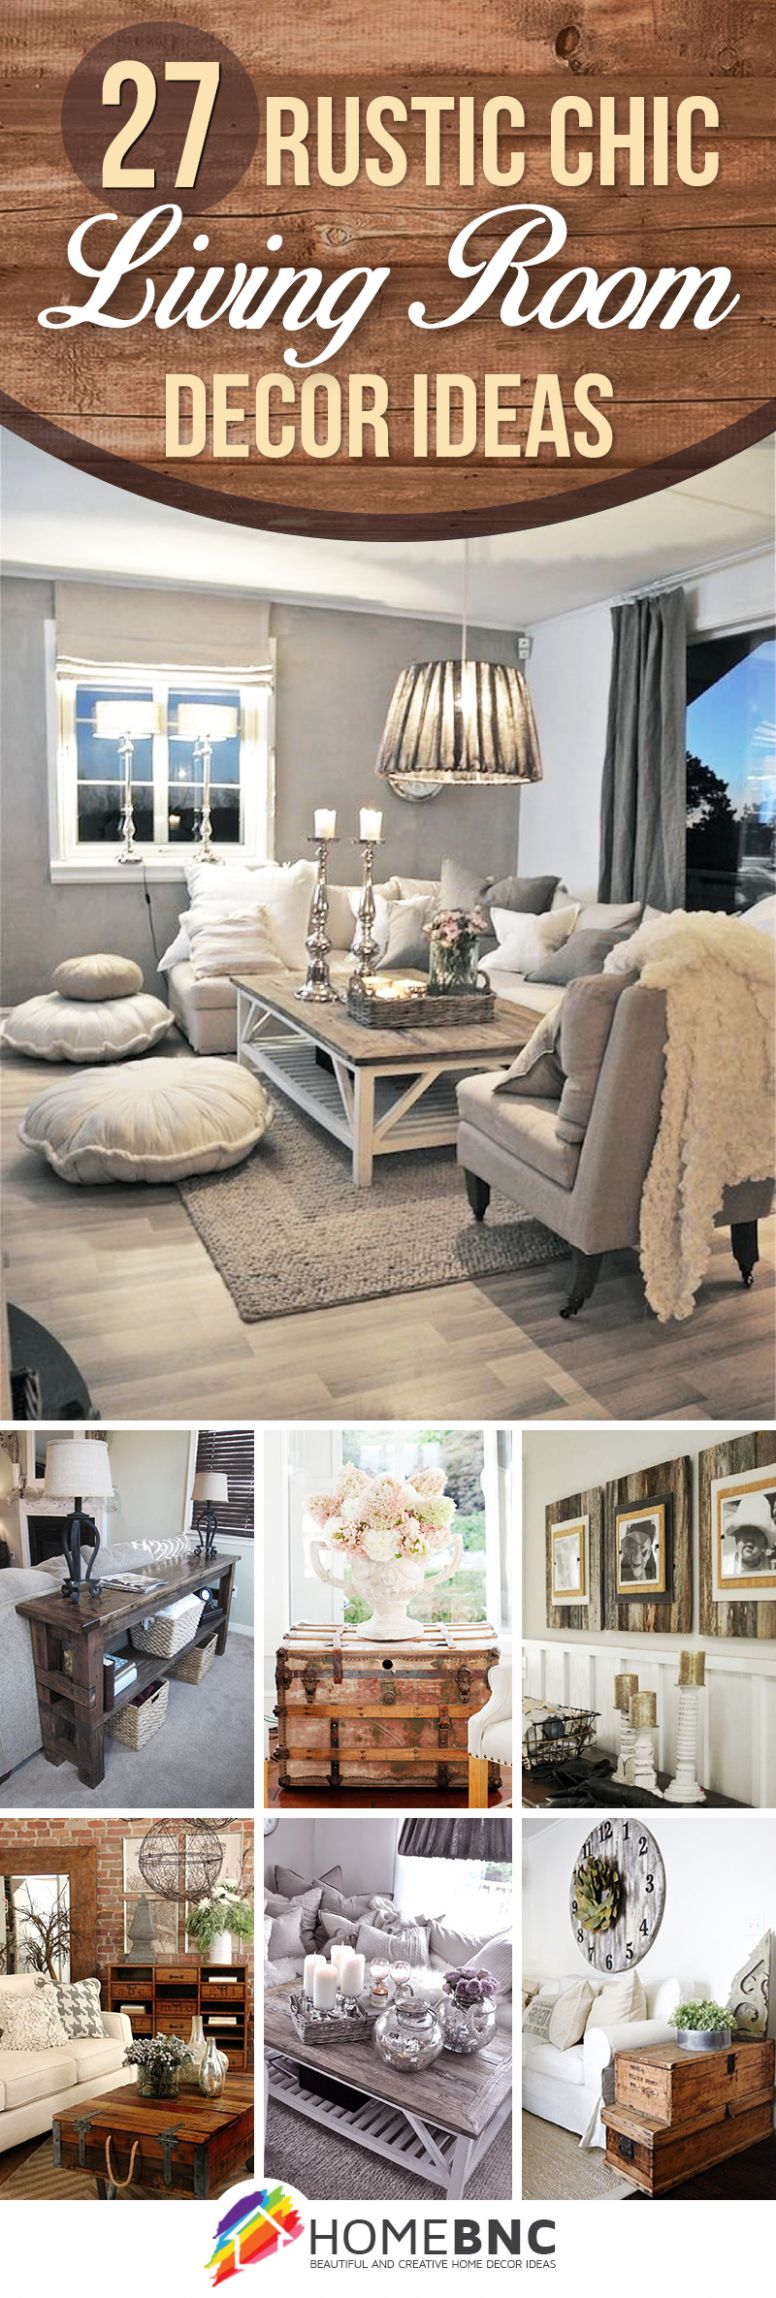 11 Best Rustic Chic Living Room Ideas and Designs for 11 - wall decor ideas chic